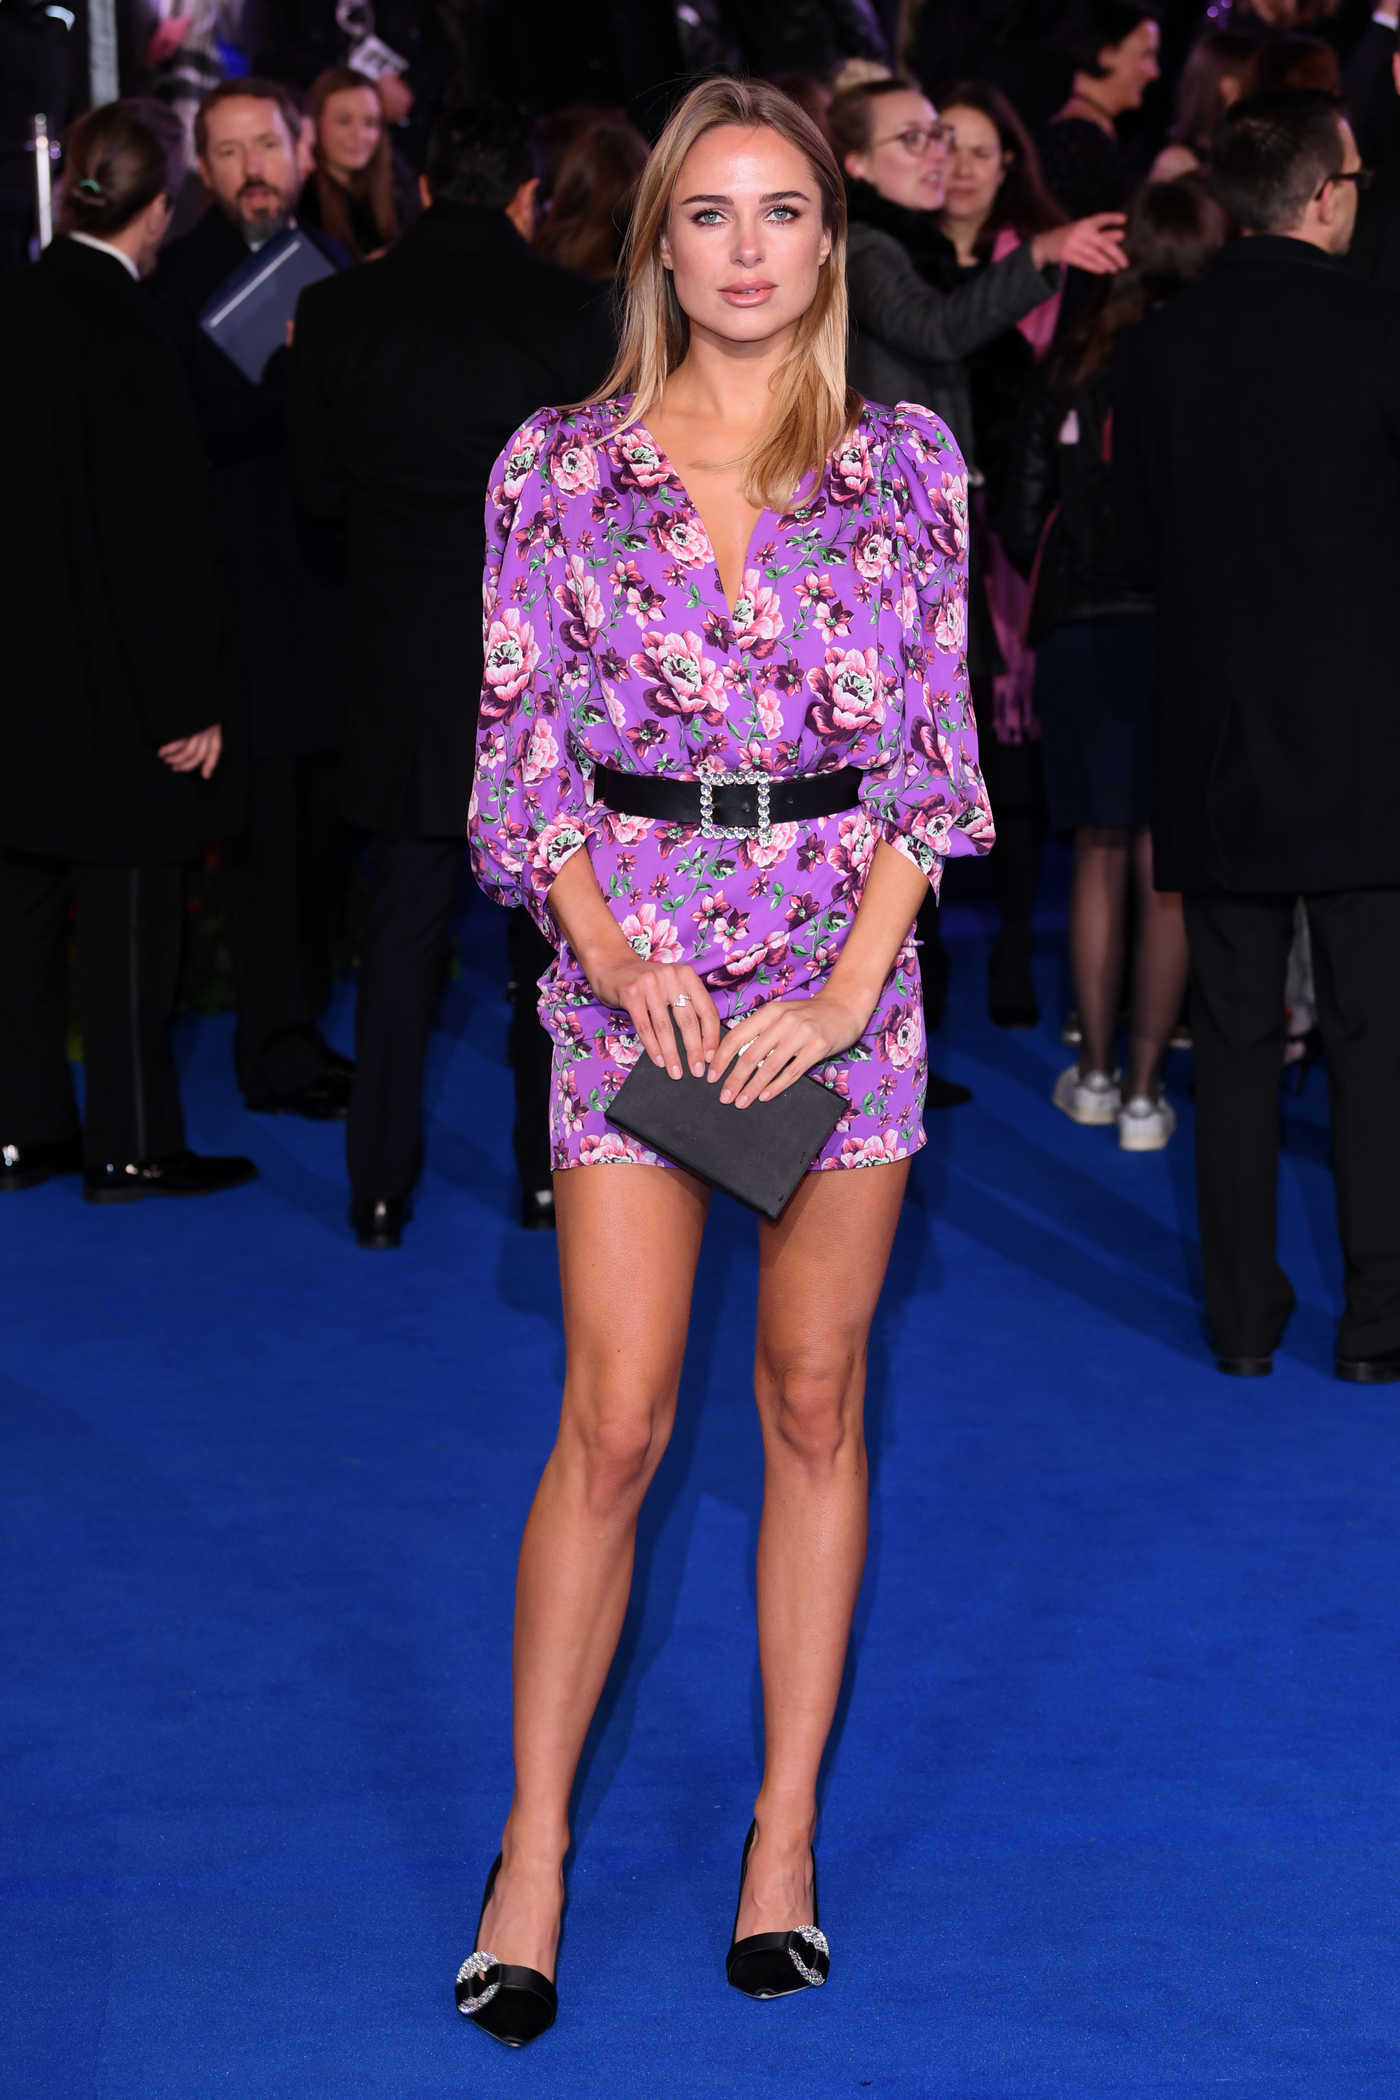 Kimberley Garner Attends Mary Poppins Returns Premiere in London 12/12/2018